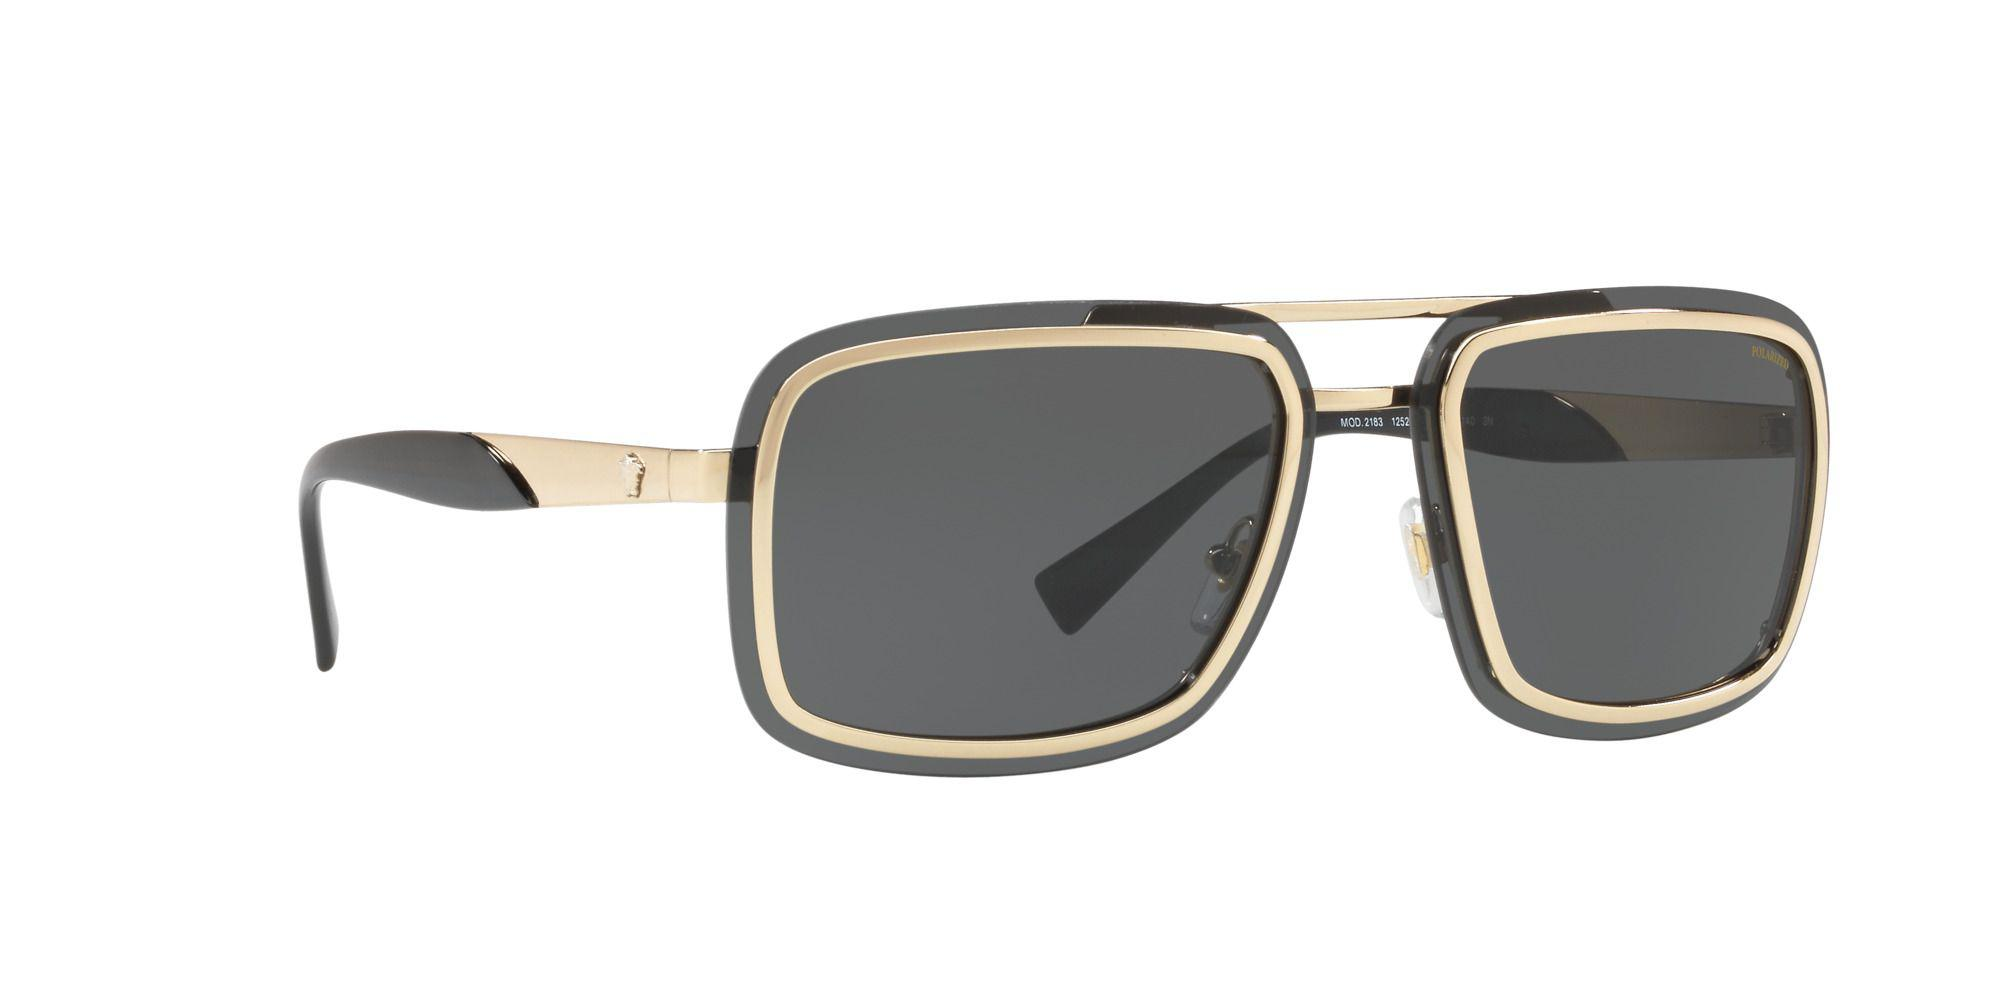 38e7f00fe013 Versace - Metallic Gold Ve2183 Square Sunglasses for Men - Lyst. View  fullscreen